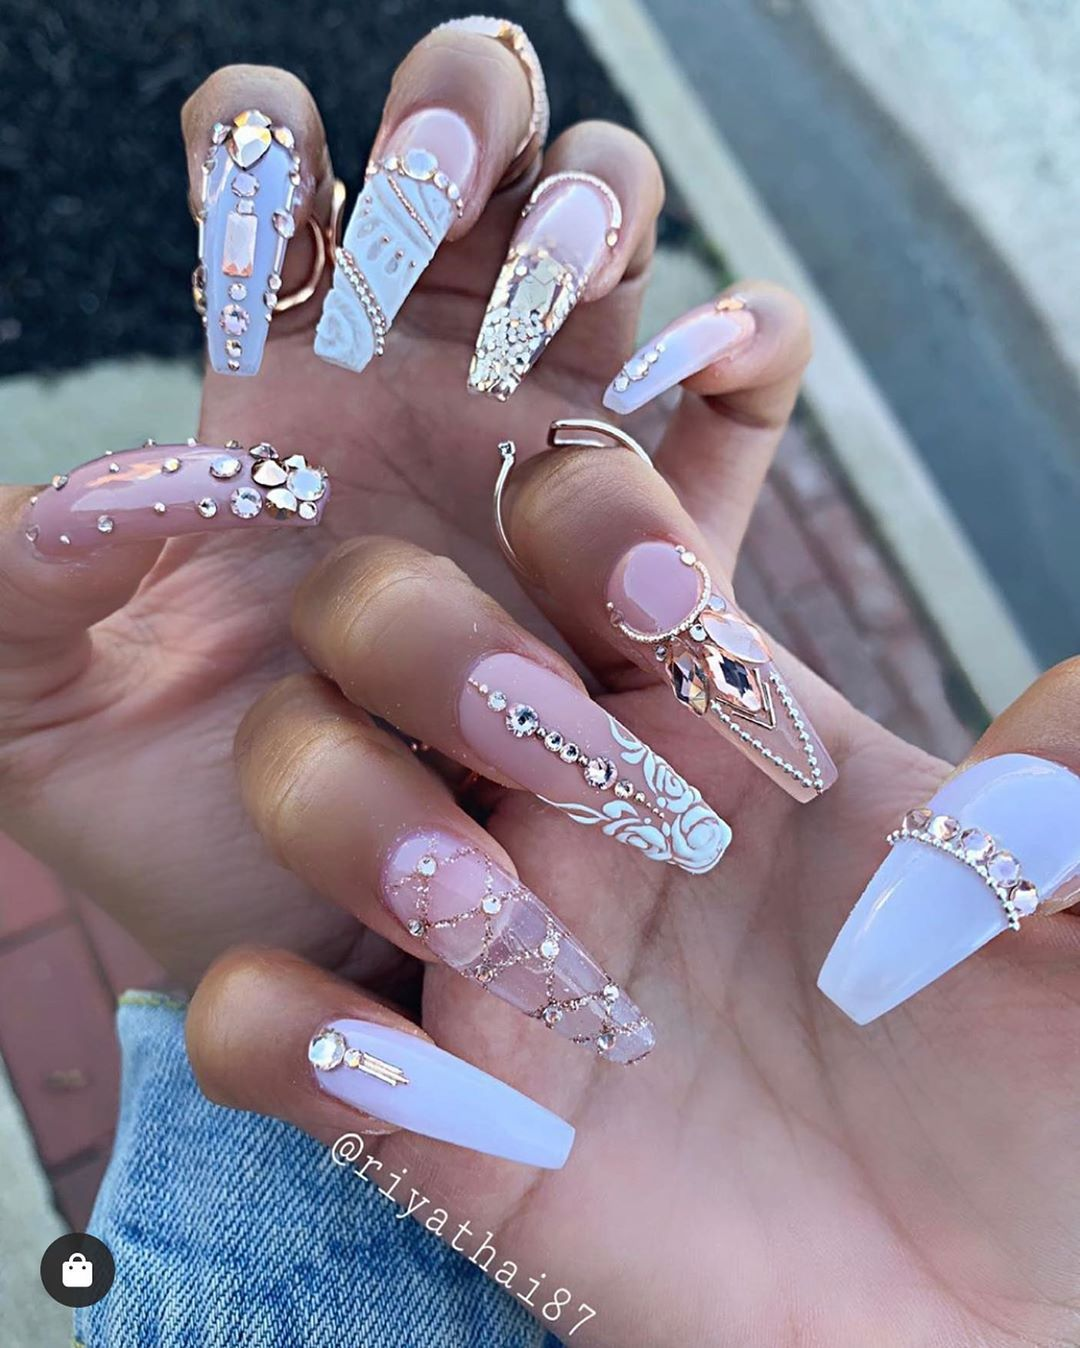 30 Amazing Rhinestone Nail Art Designs Ecstasycoffee: Pin By BBBeauty On NAILS In 2020